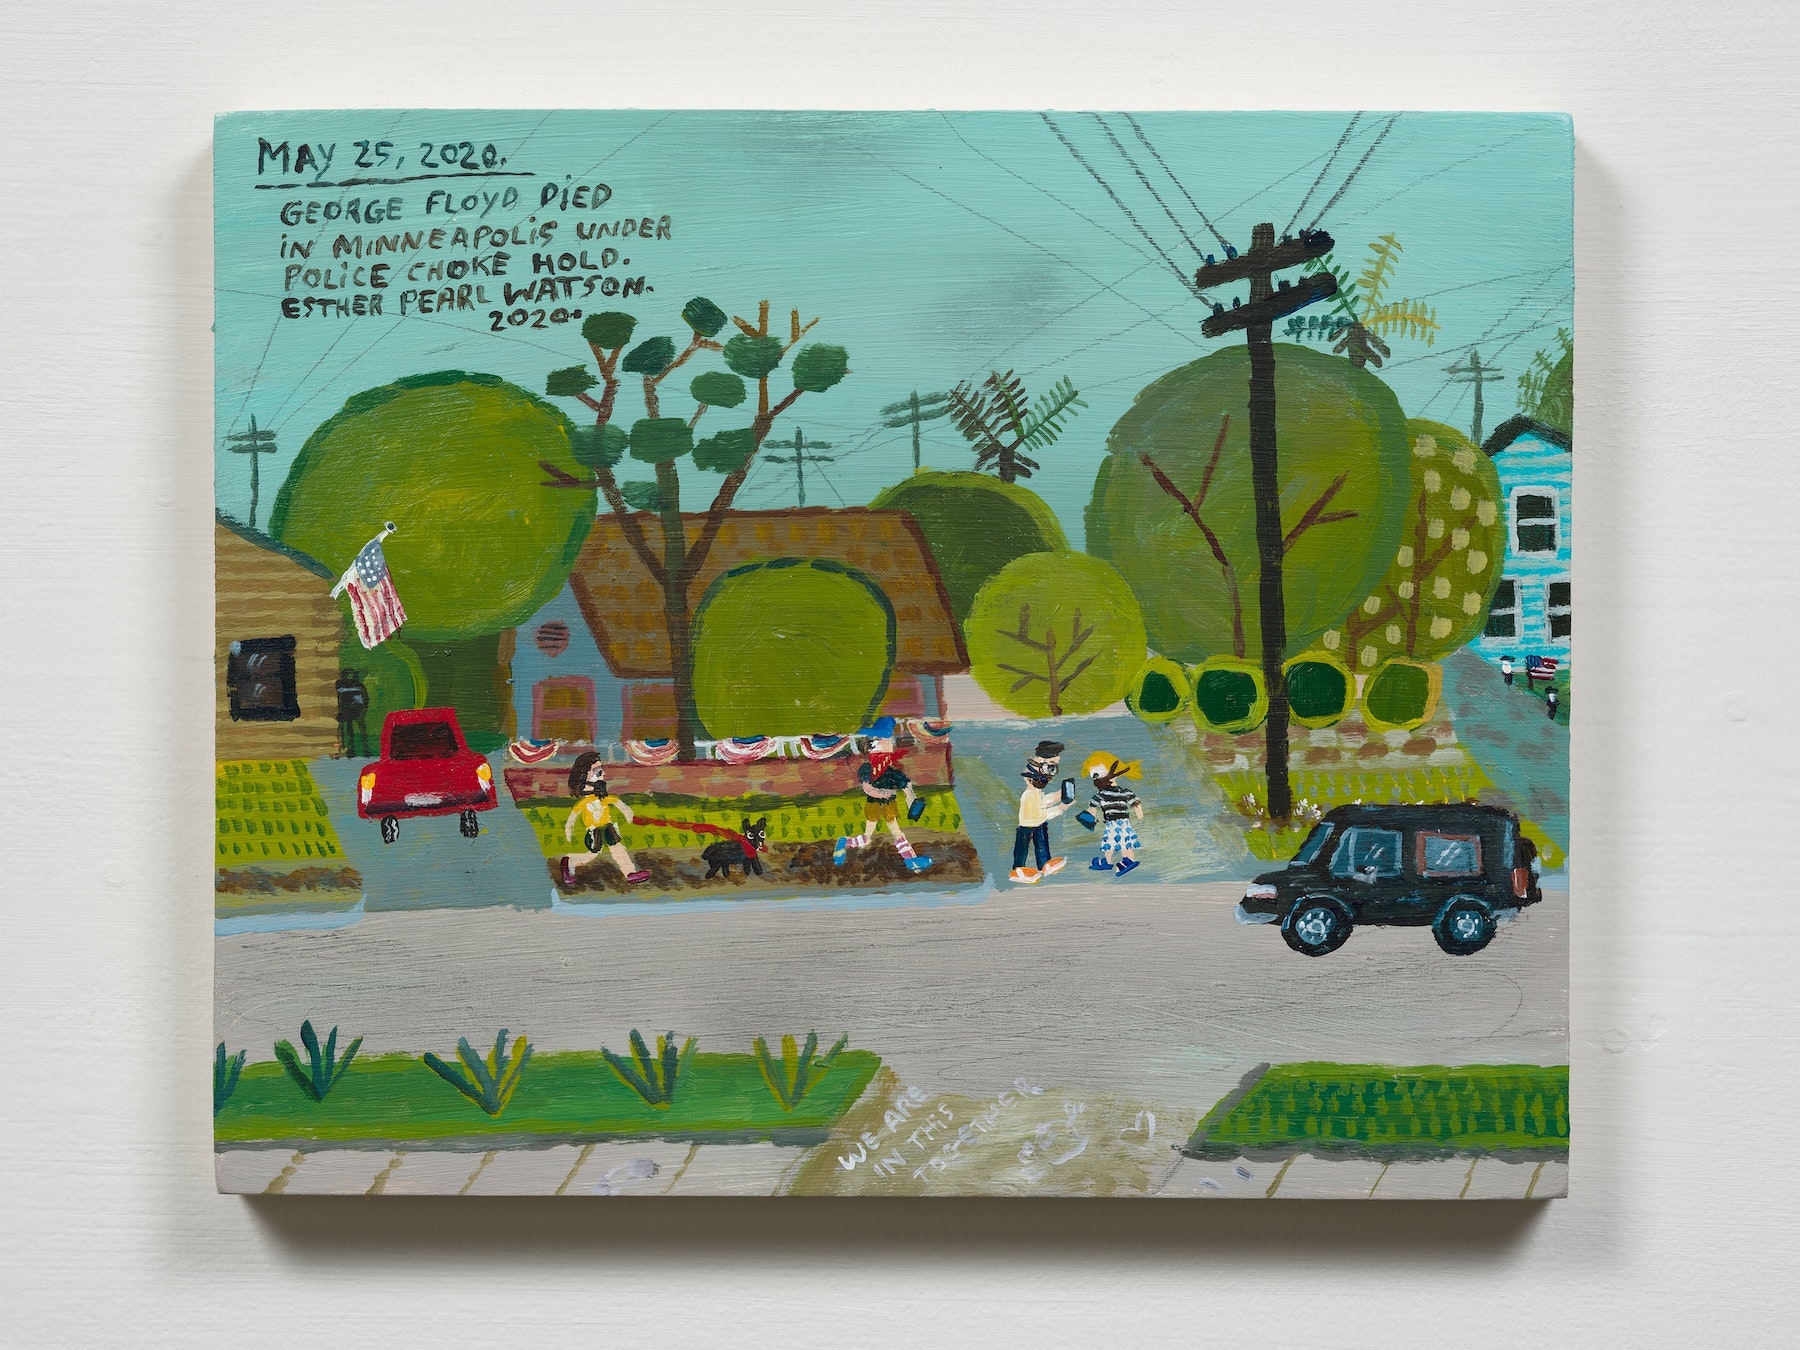 """Esther Pearl Watson """"May 25, George Floyd Died,"""" 2020 Acrylic with pencil on panel 8 x 10"""" [HxW] (20.32 x 25.4 cm) Inventory #EPW283 Courtesy of the artist and Vielmetter Los Angeles Photo credit: Jeff Mclane"""